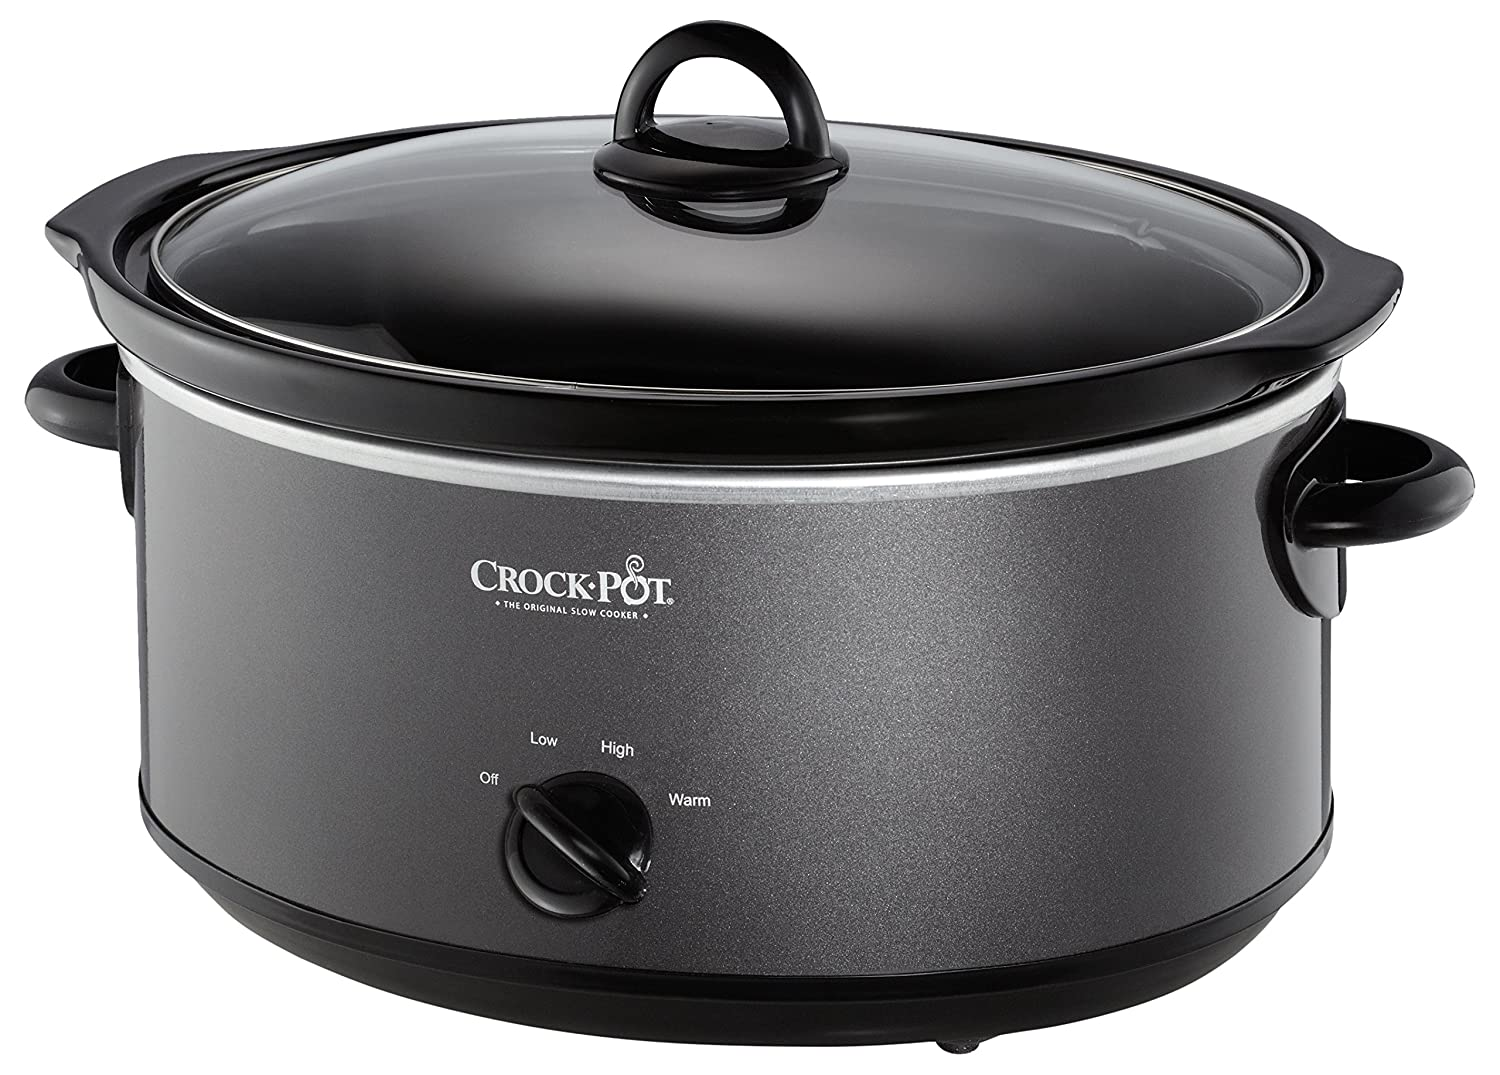 Crockpot SCV700-KC crock pot 7 quarts Charcoal